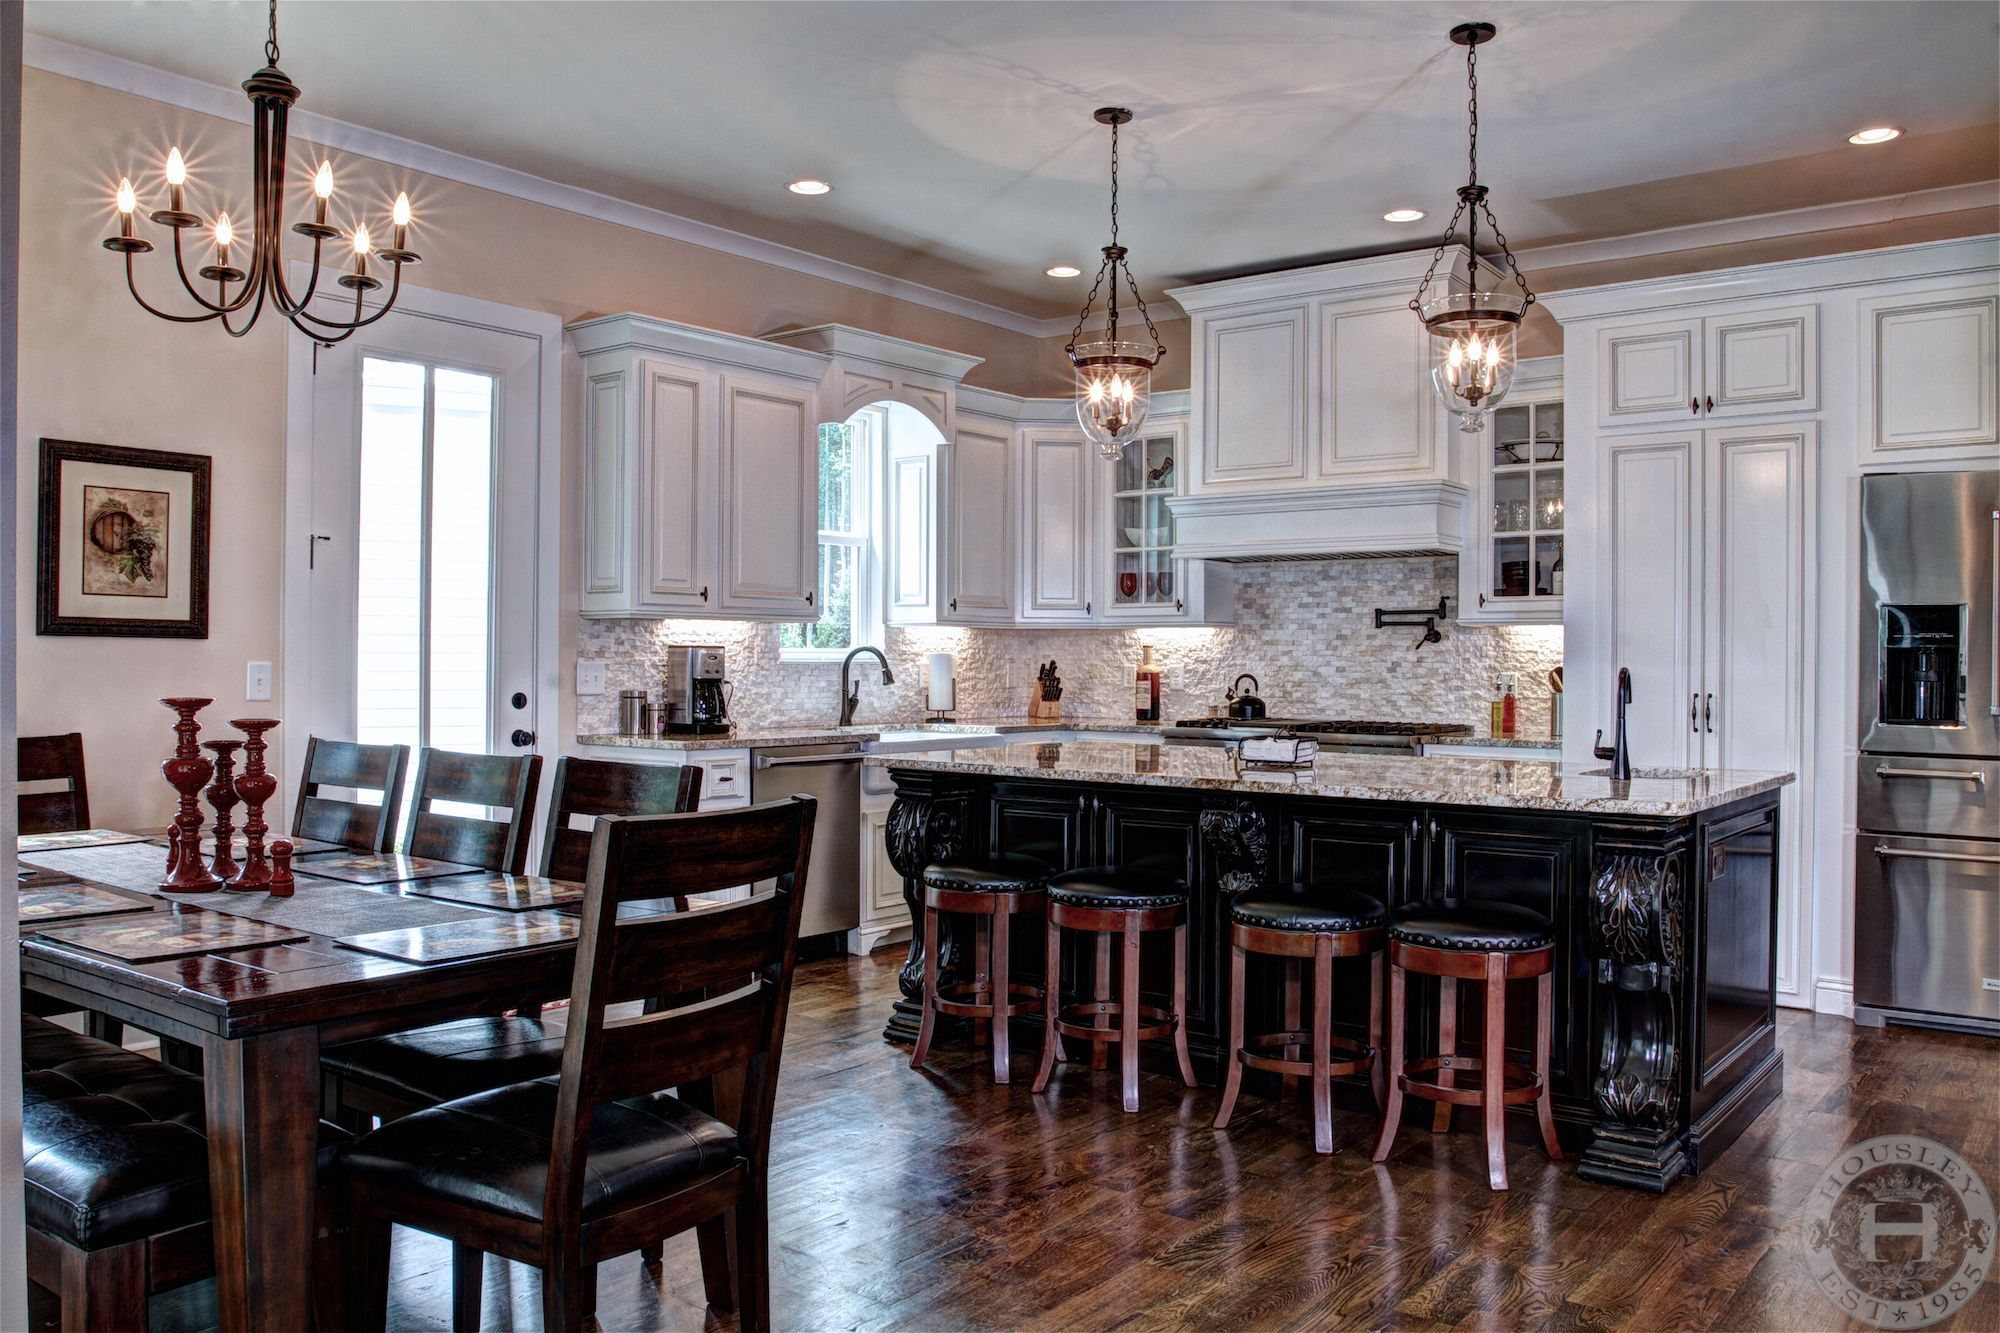 Four Gables Southern Living House Plans Mitchell Genn Southern Living House Plans Home Decor Styles Southern Living Kitchen